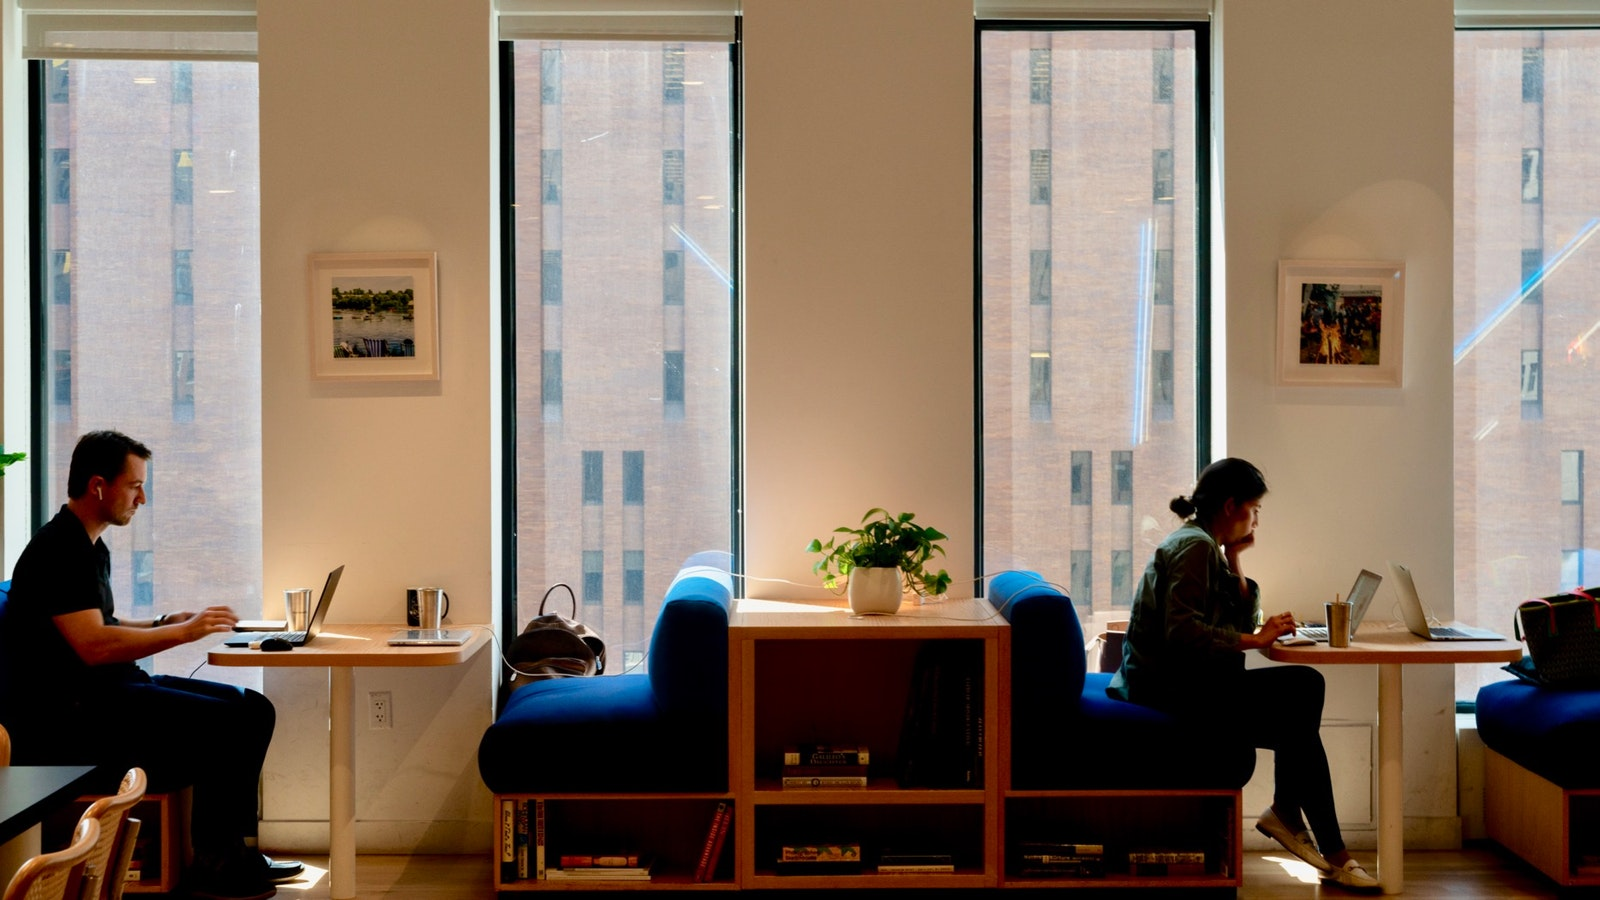 A WeWork office in New York City. Photo: Bloomberg